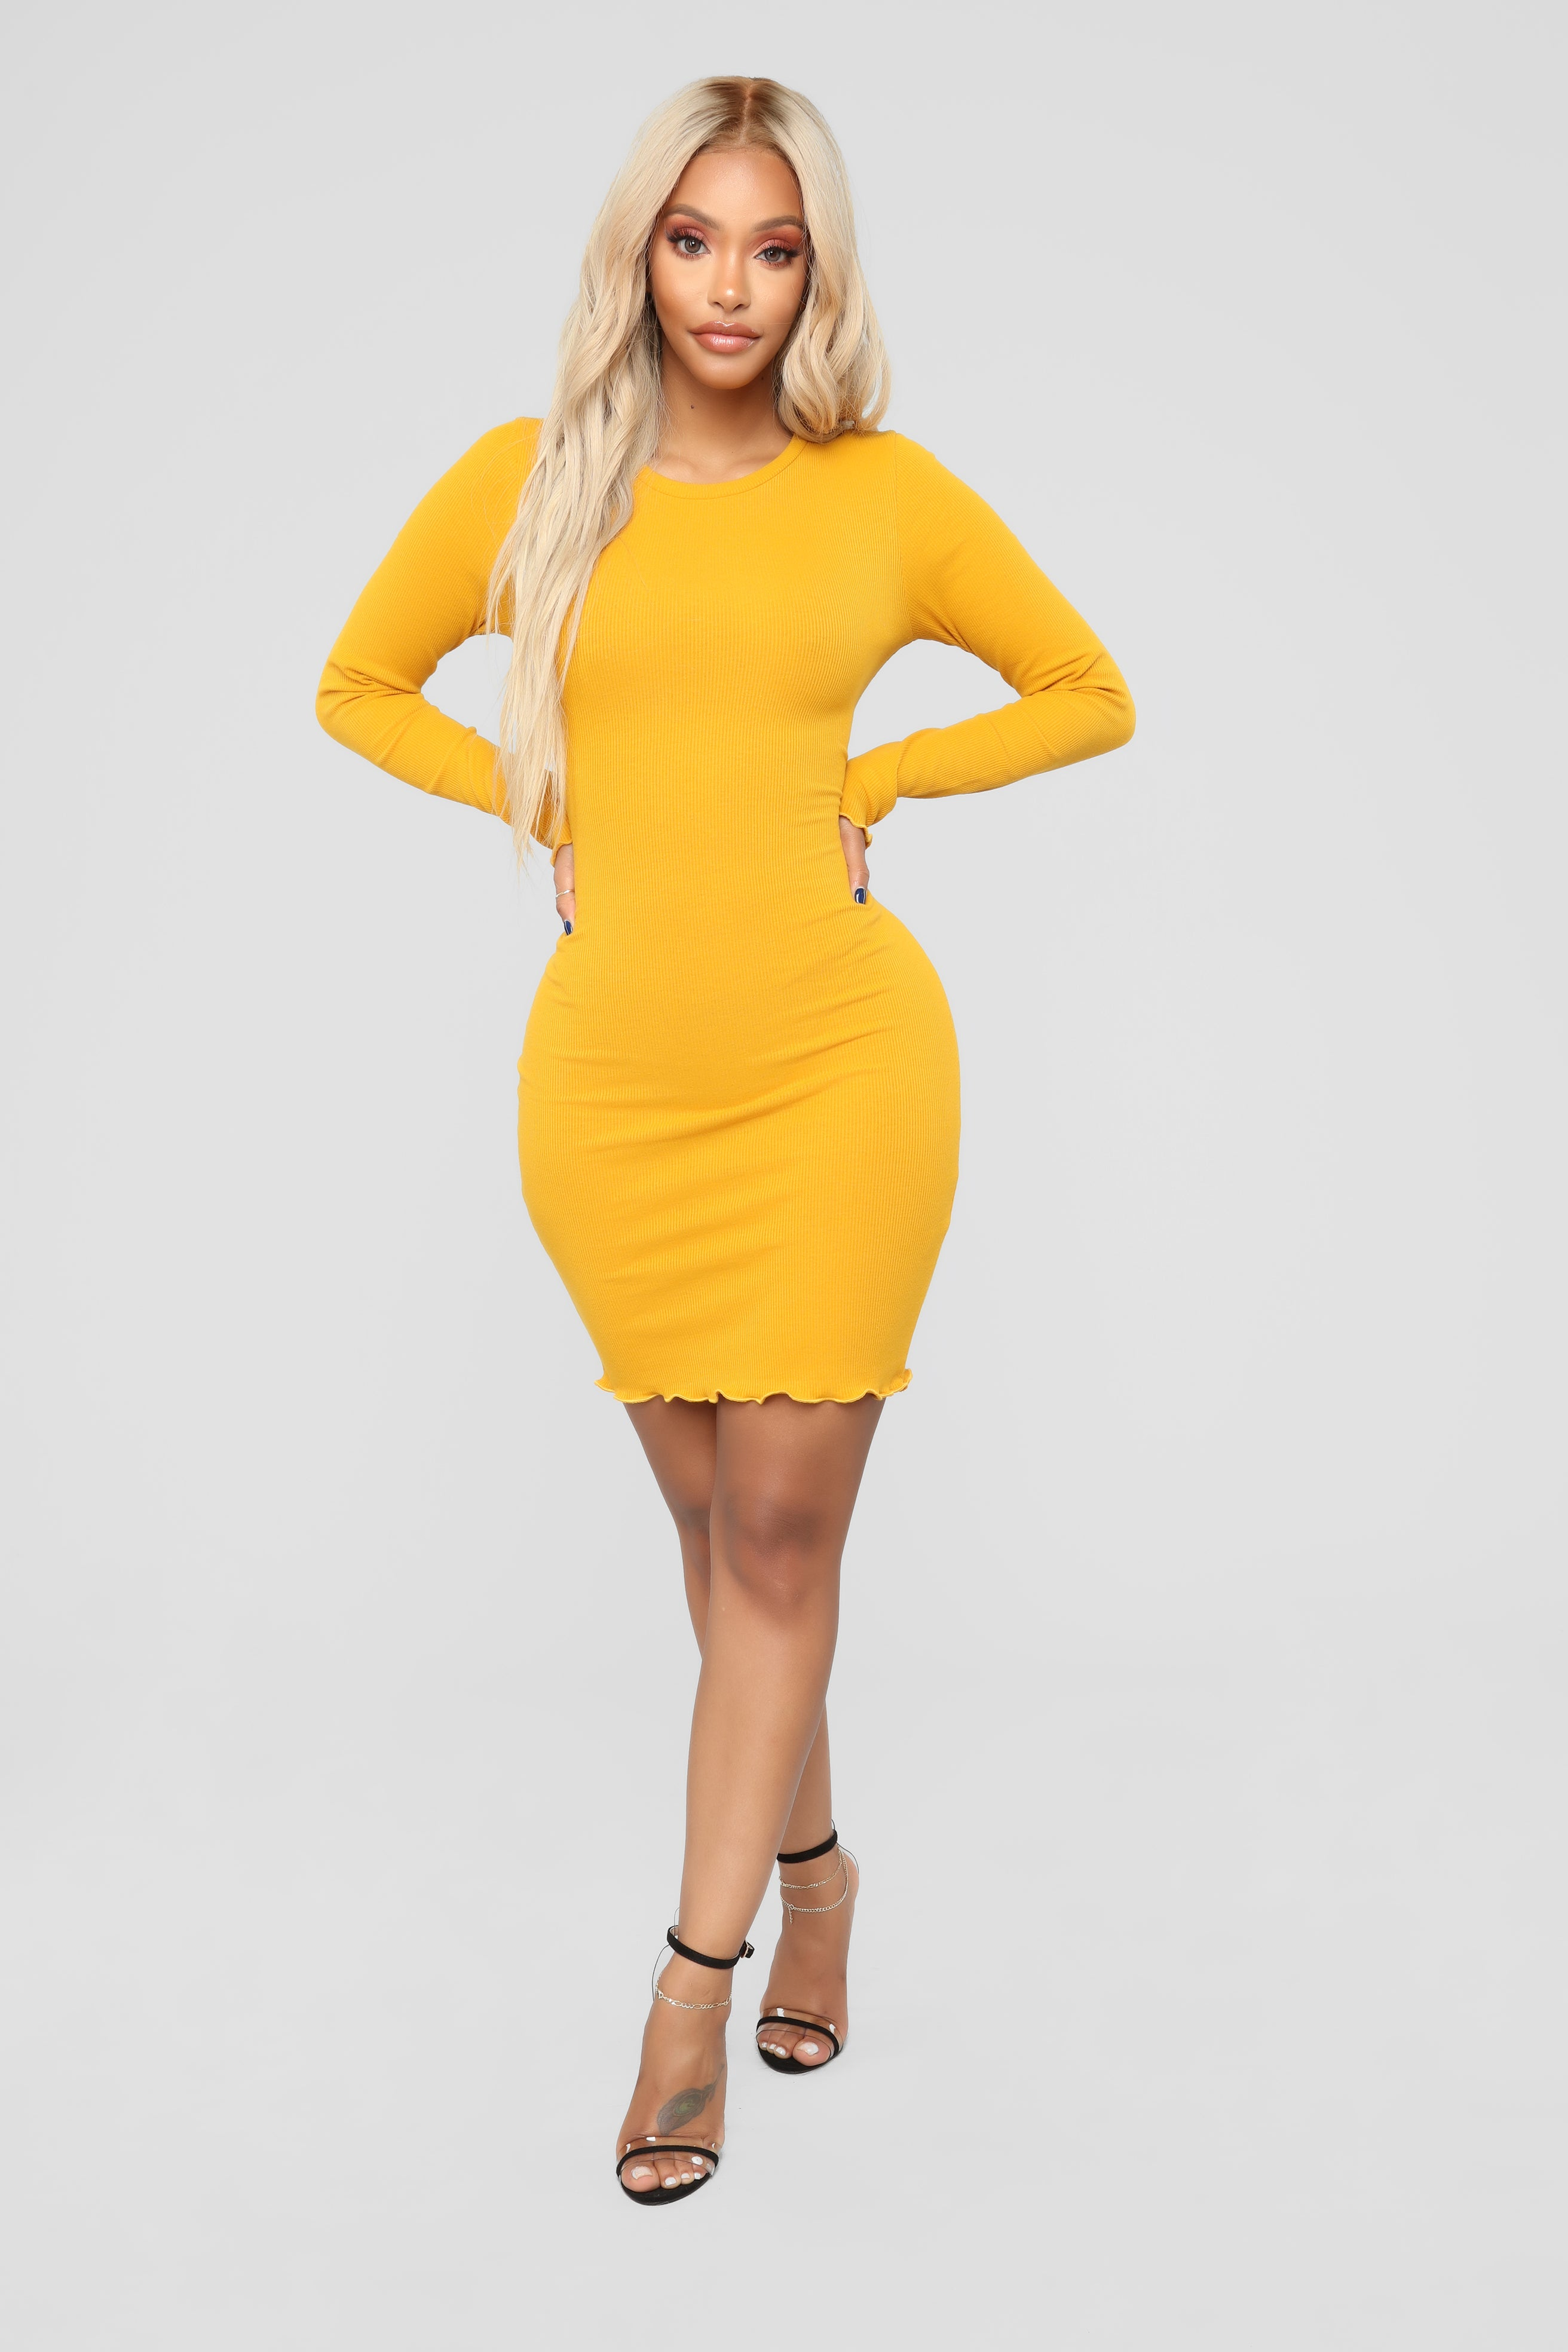 884ca44f8c00 https   www.fashionnova.com products varsity-blues-dress-mustard ...